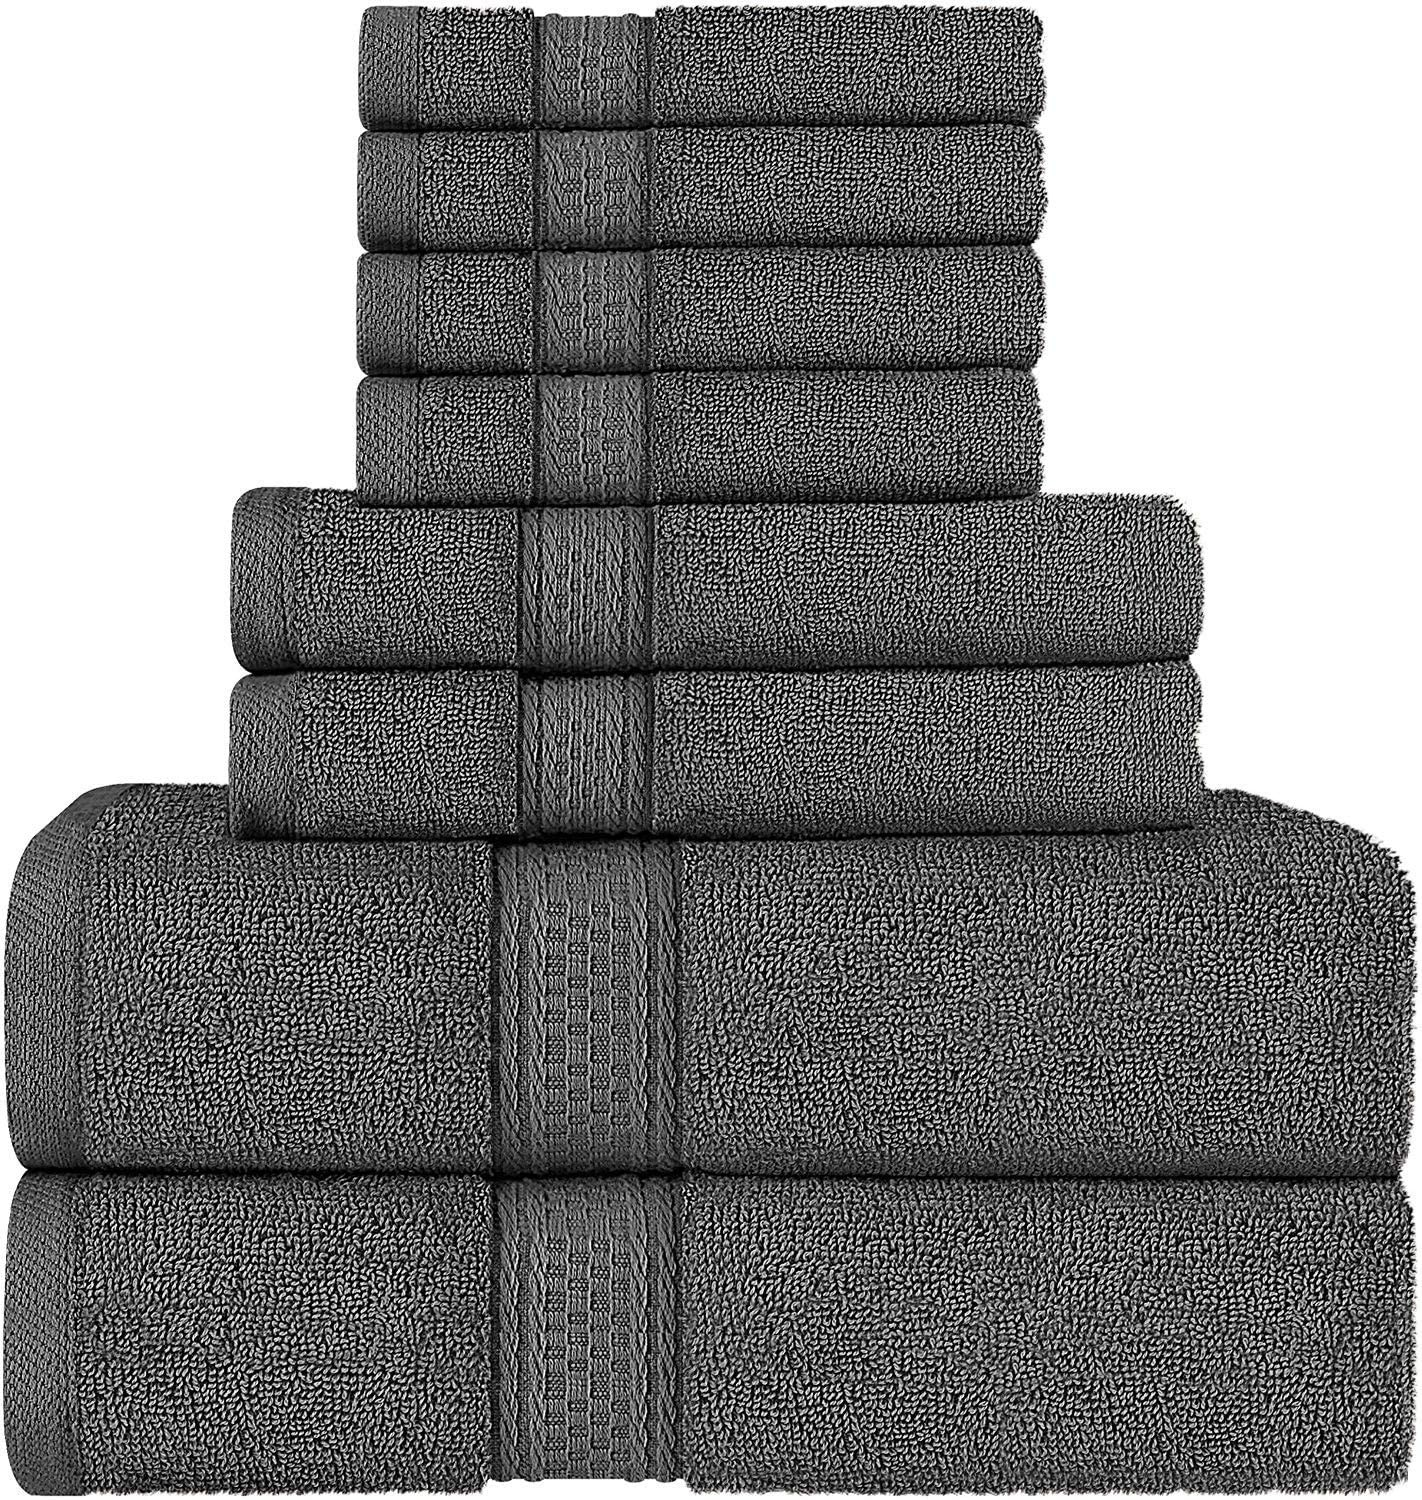 Grey 8 Piece Towel Set